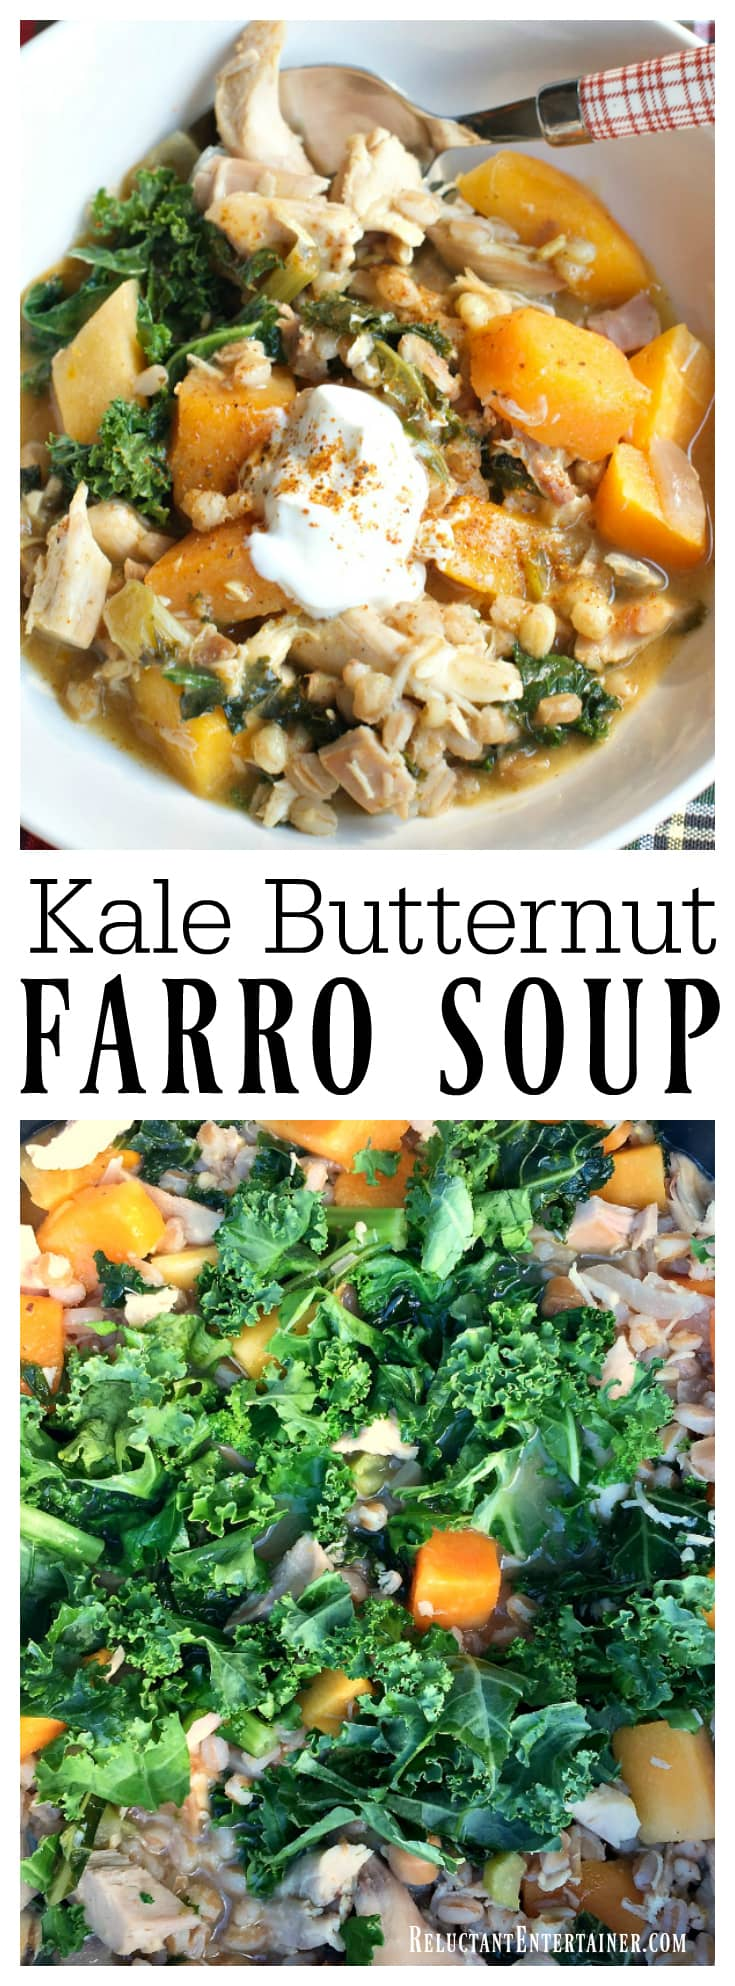 Kale Butternut Farro Soup is delicious with leftover turkey or chicken, the perfect comfort dish to serve to a friend or two